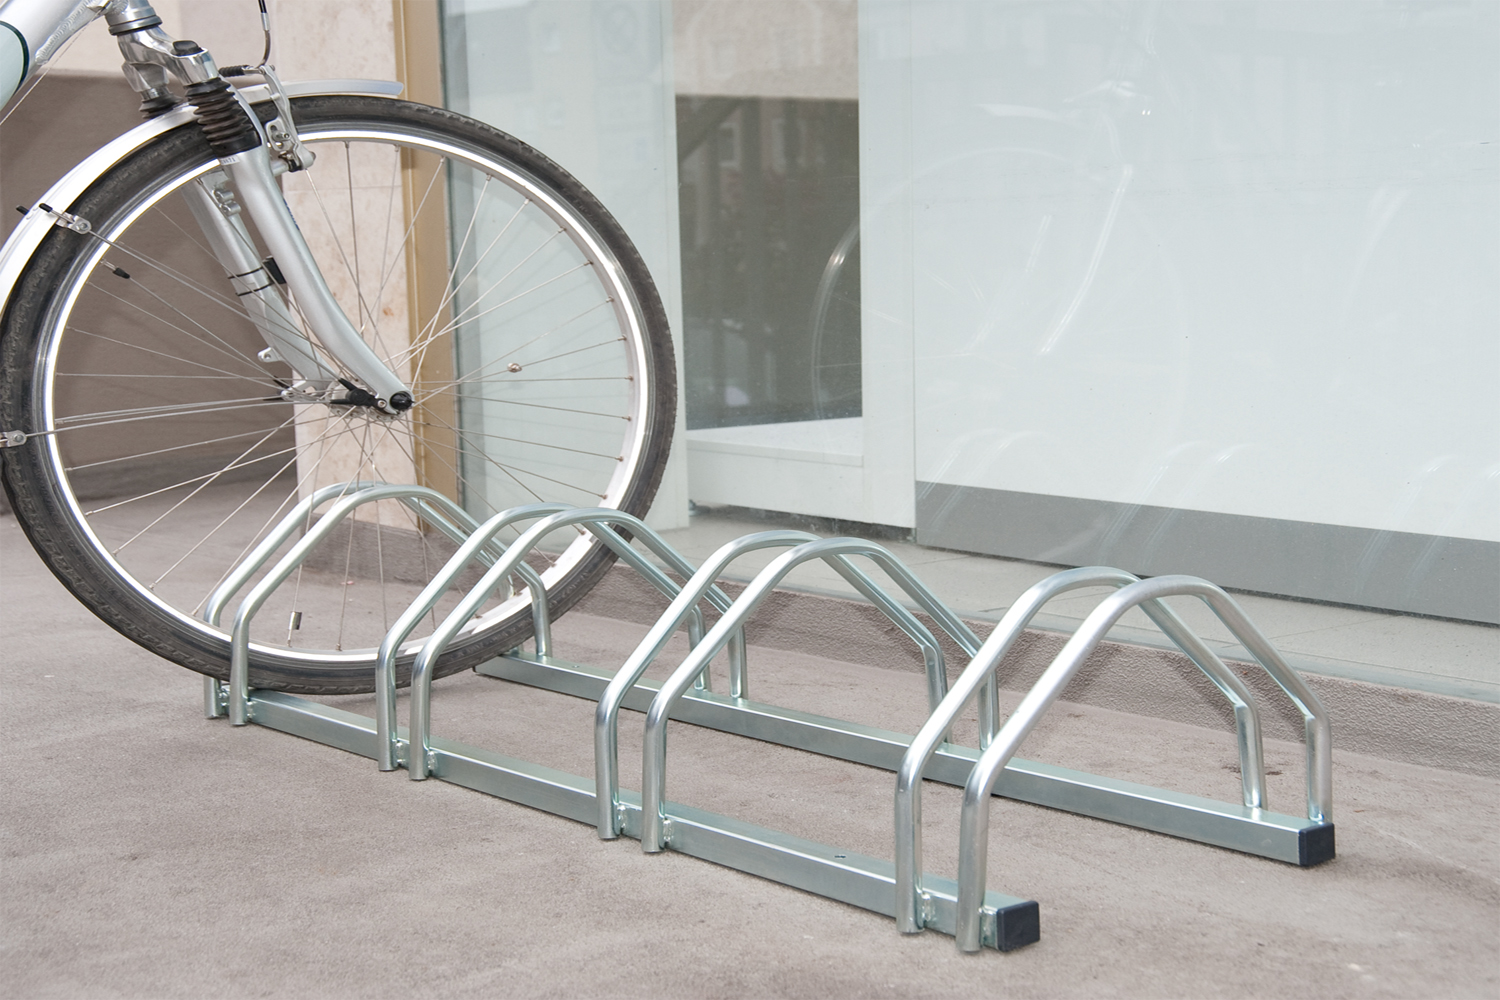 Compact Bicycle Stands